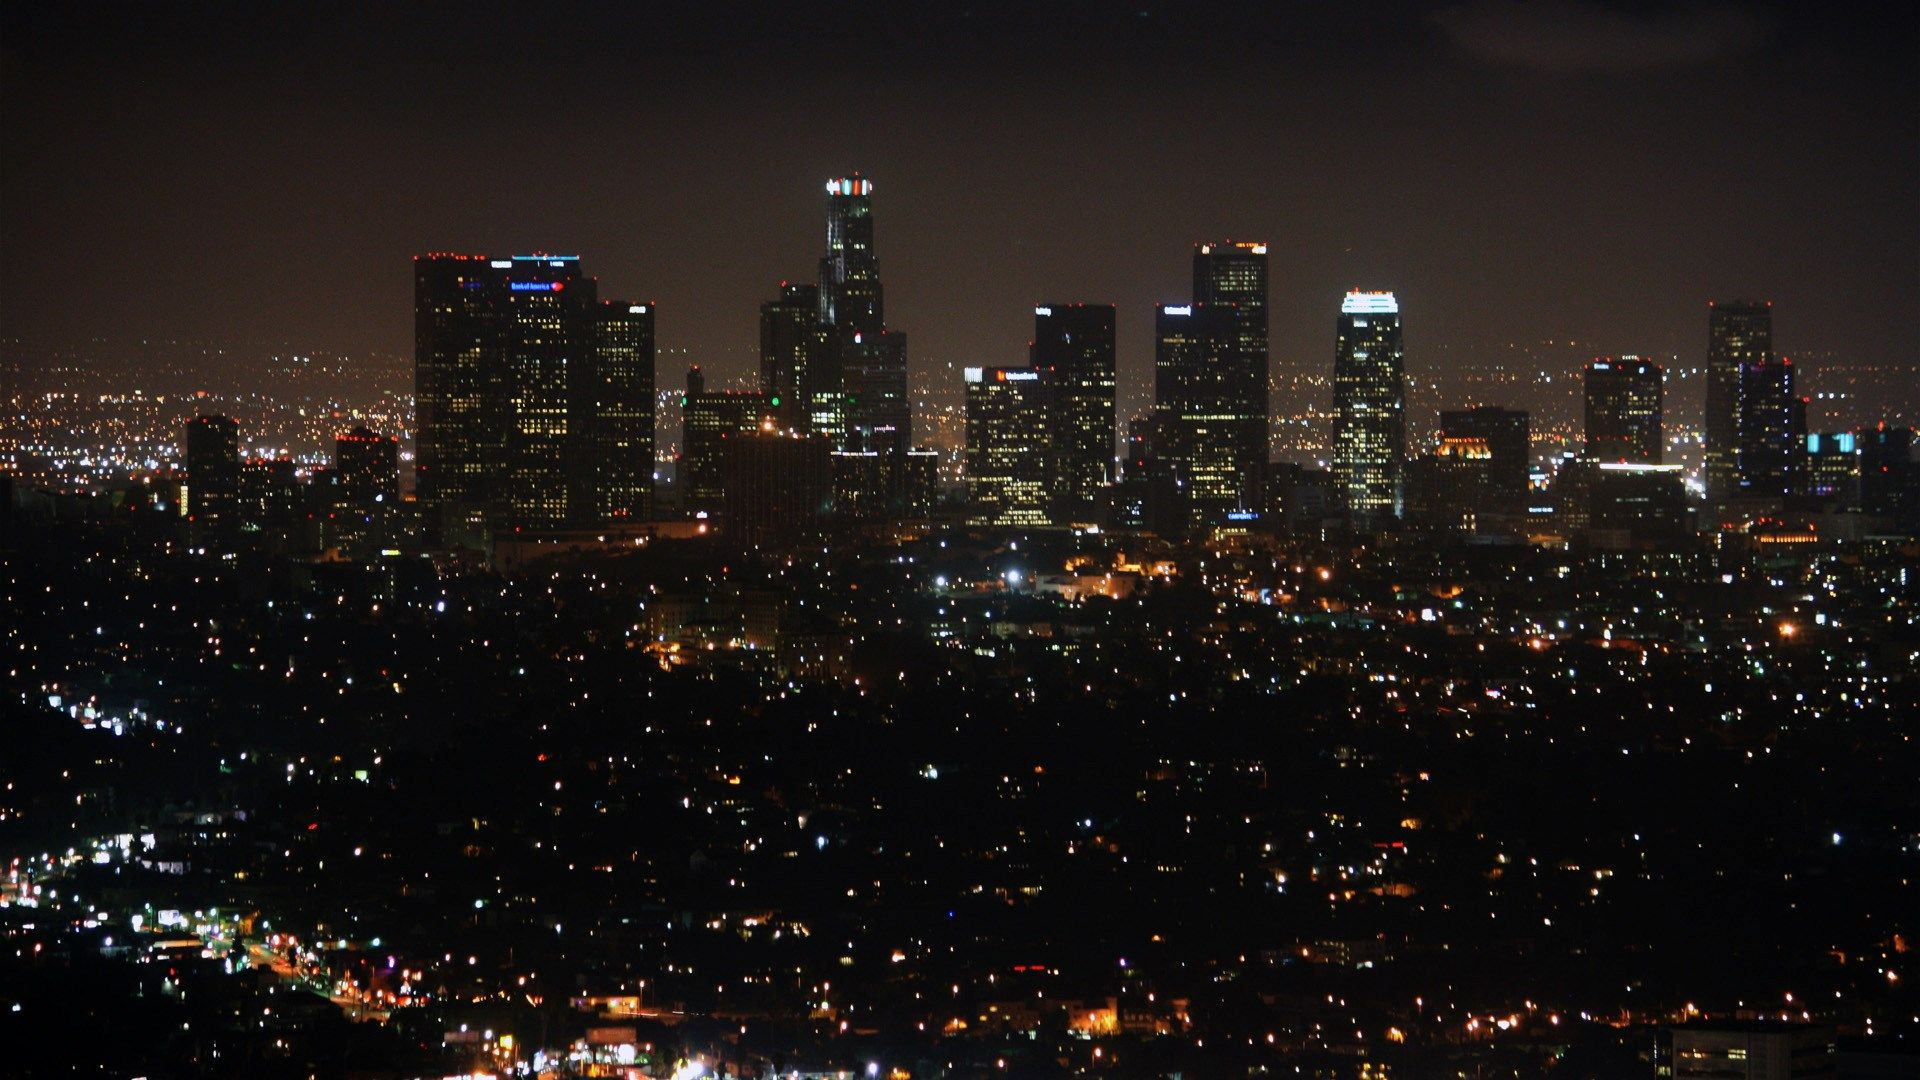 1920 x 1080 px free desktop backgrounds for los angeles city by nelson butler for